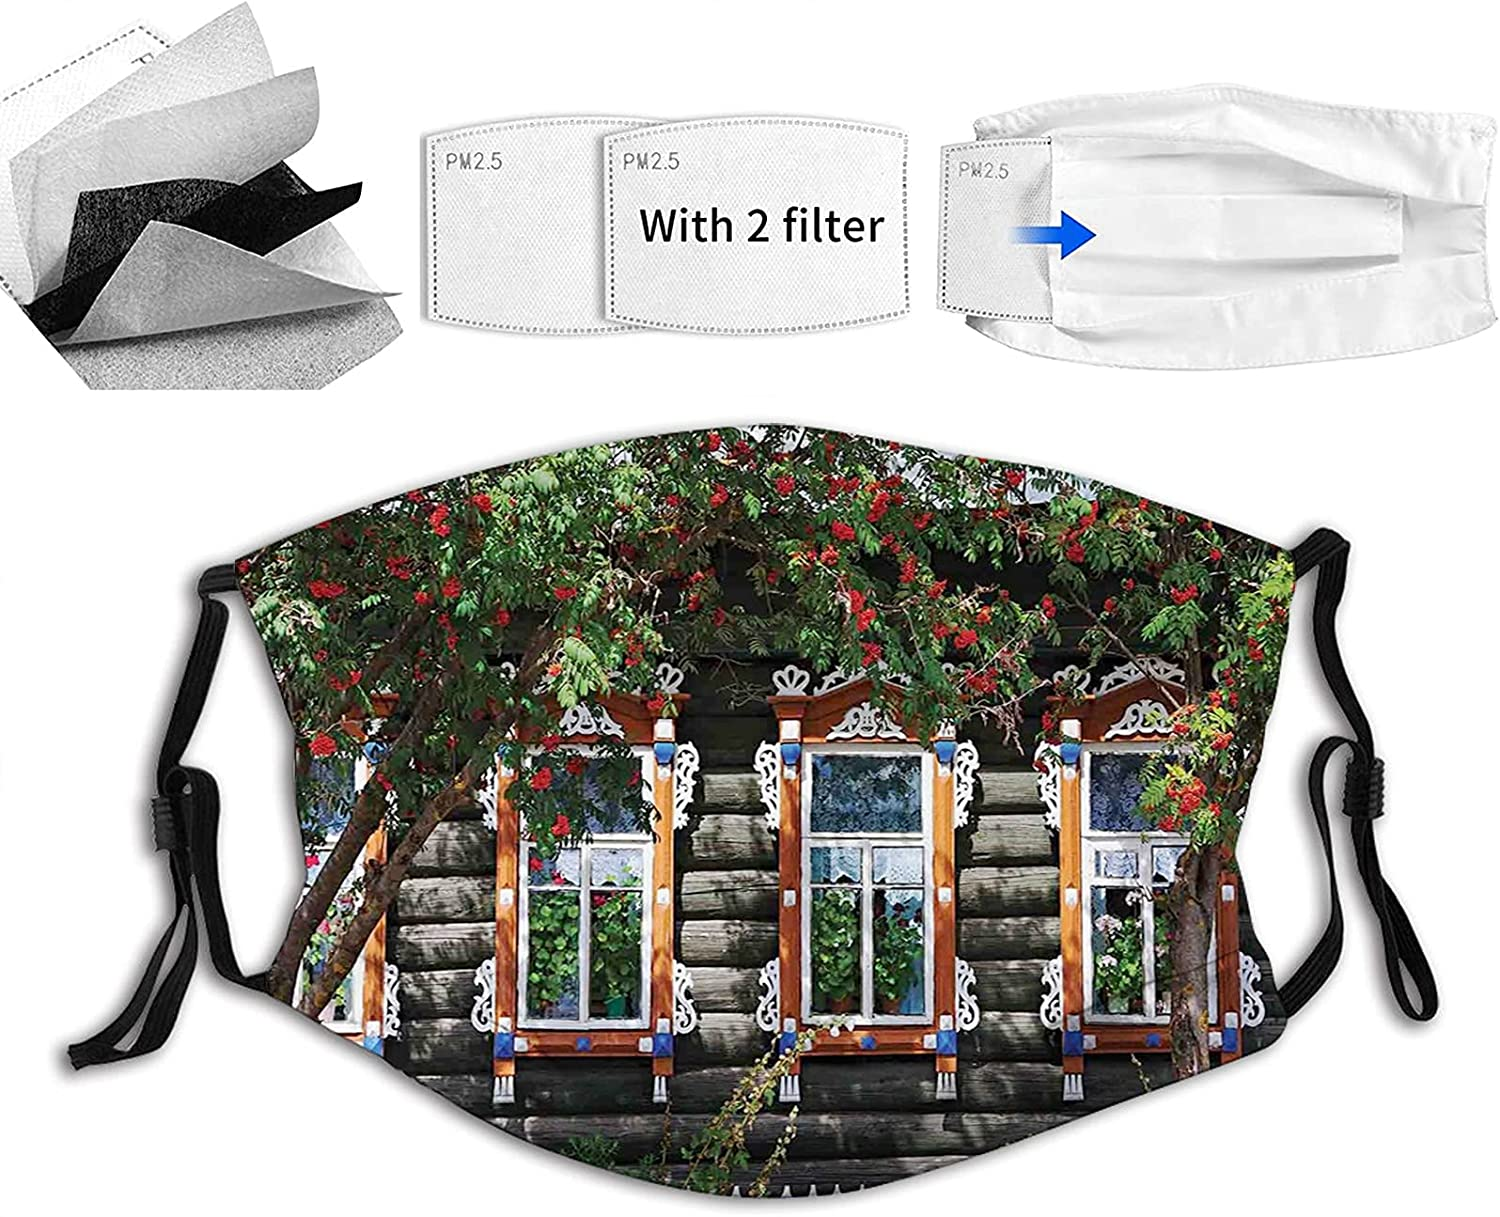 Manufacturer regenerated product Comfortable Printed mask It is very popular Wooden House at Windows with Fe Shutter